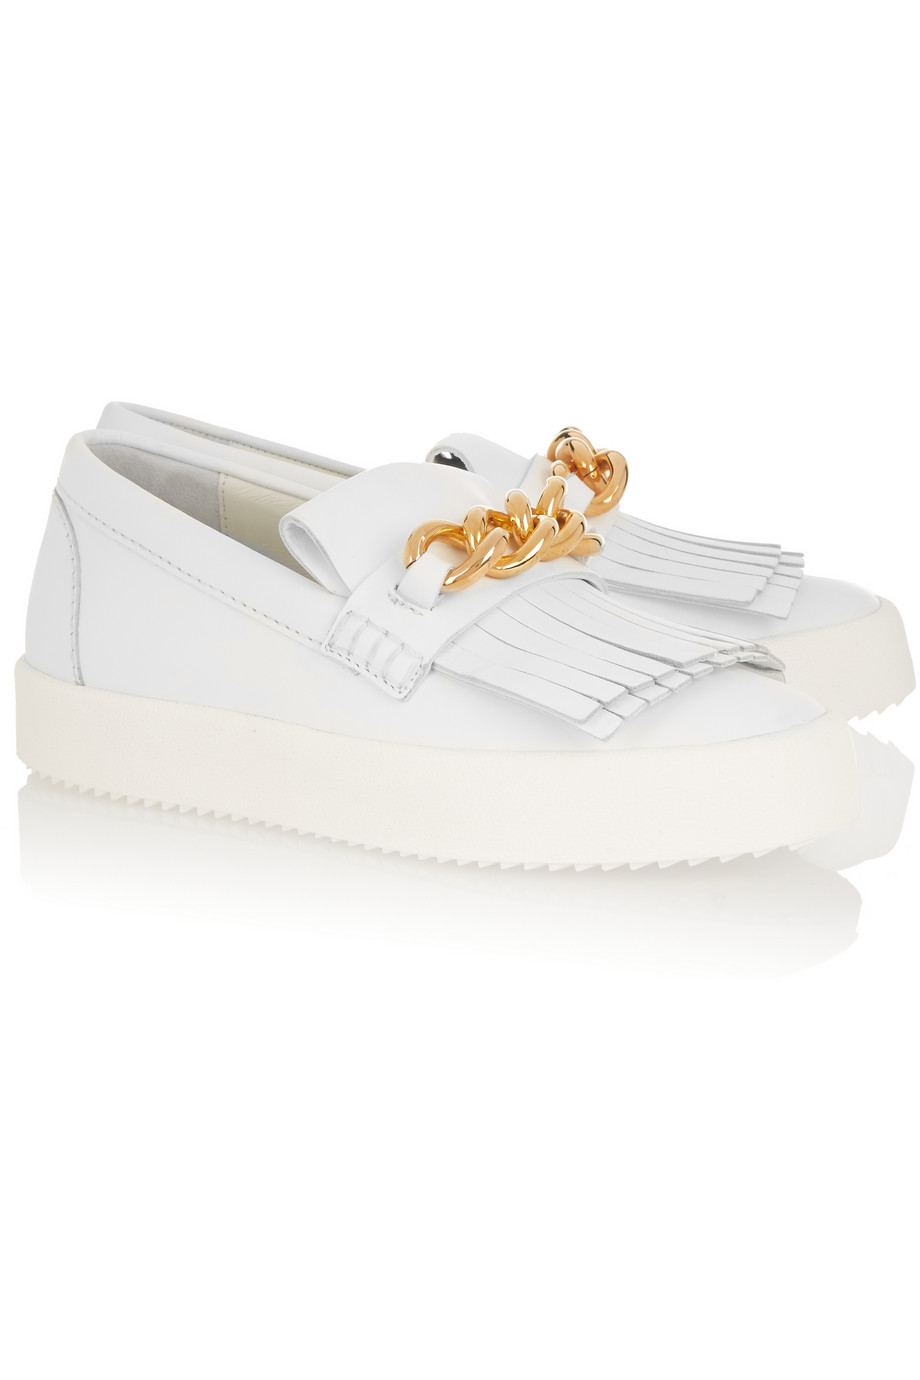 Giuseppe Zanotti May London Sneakers